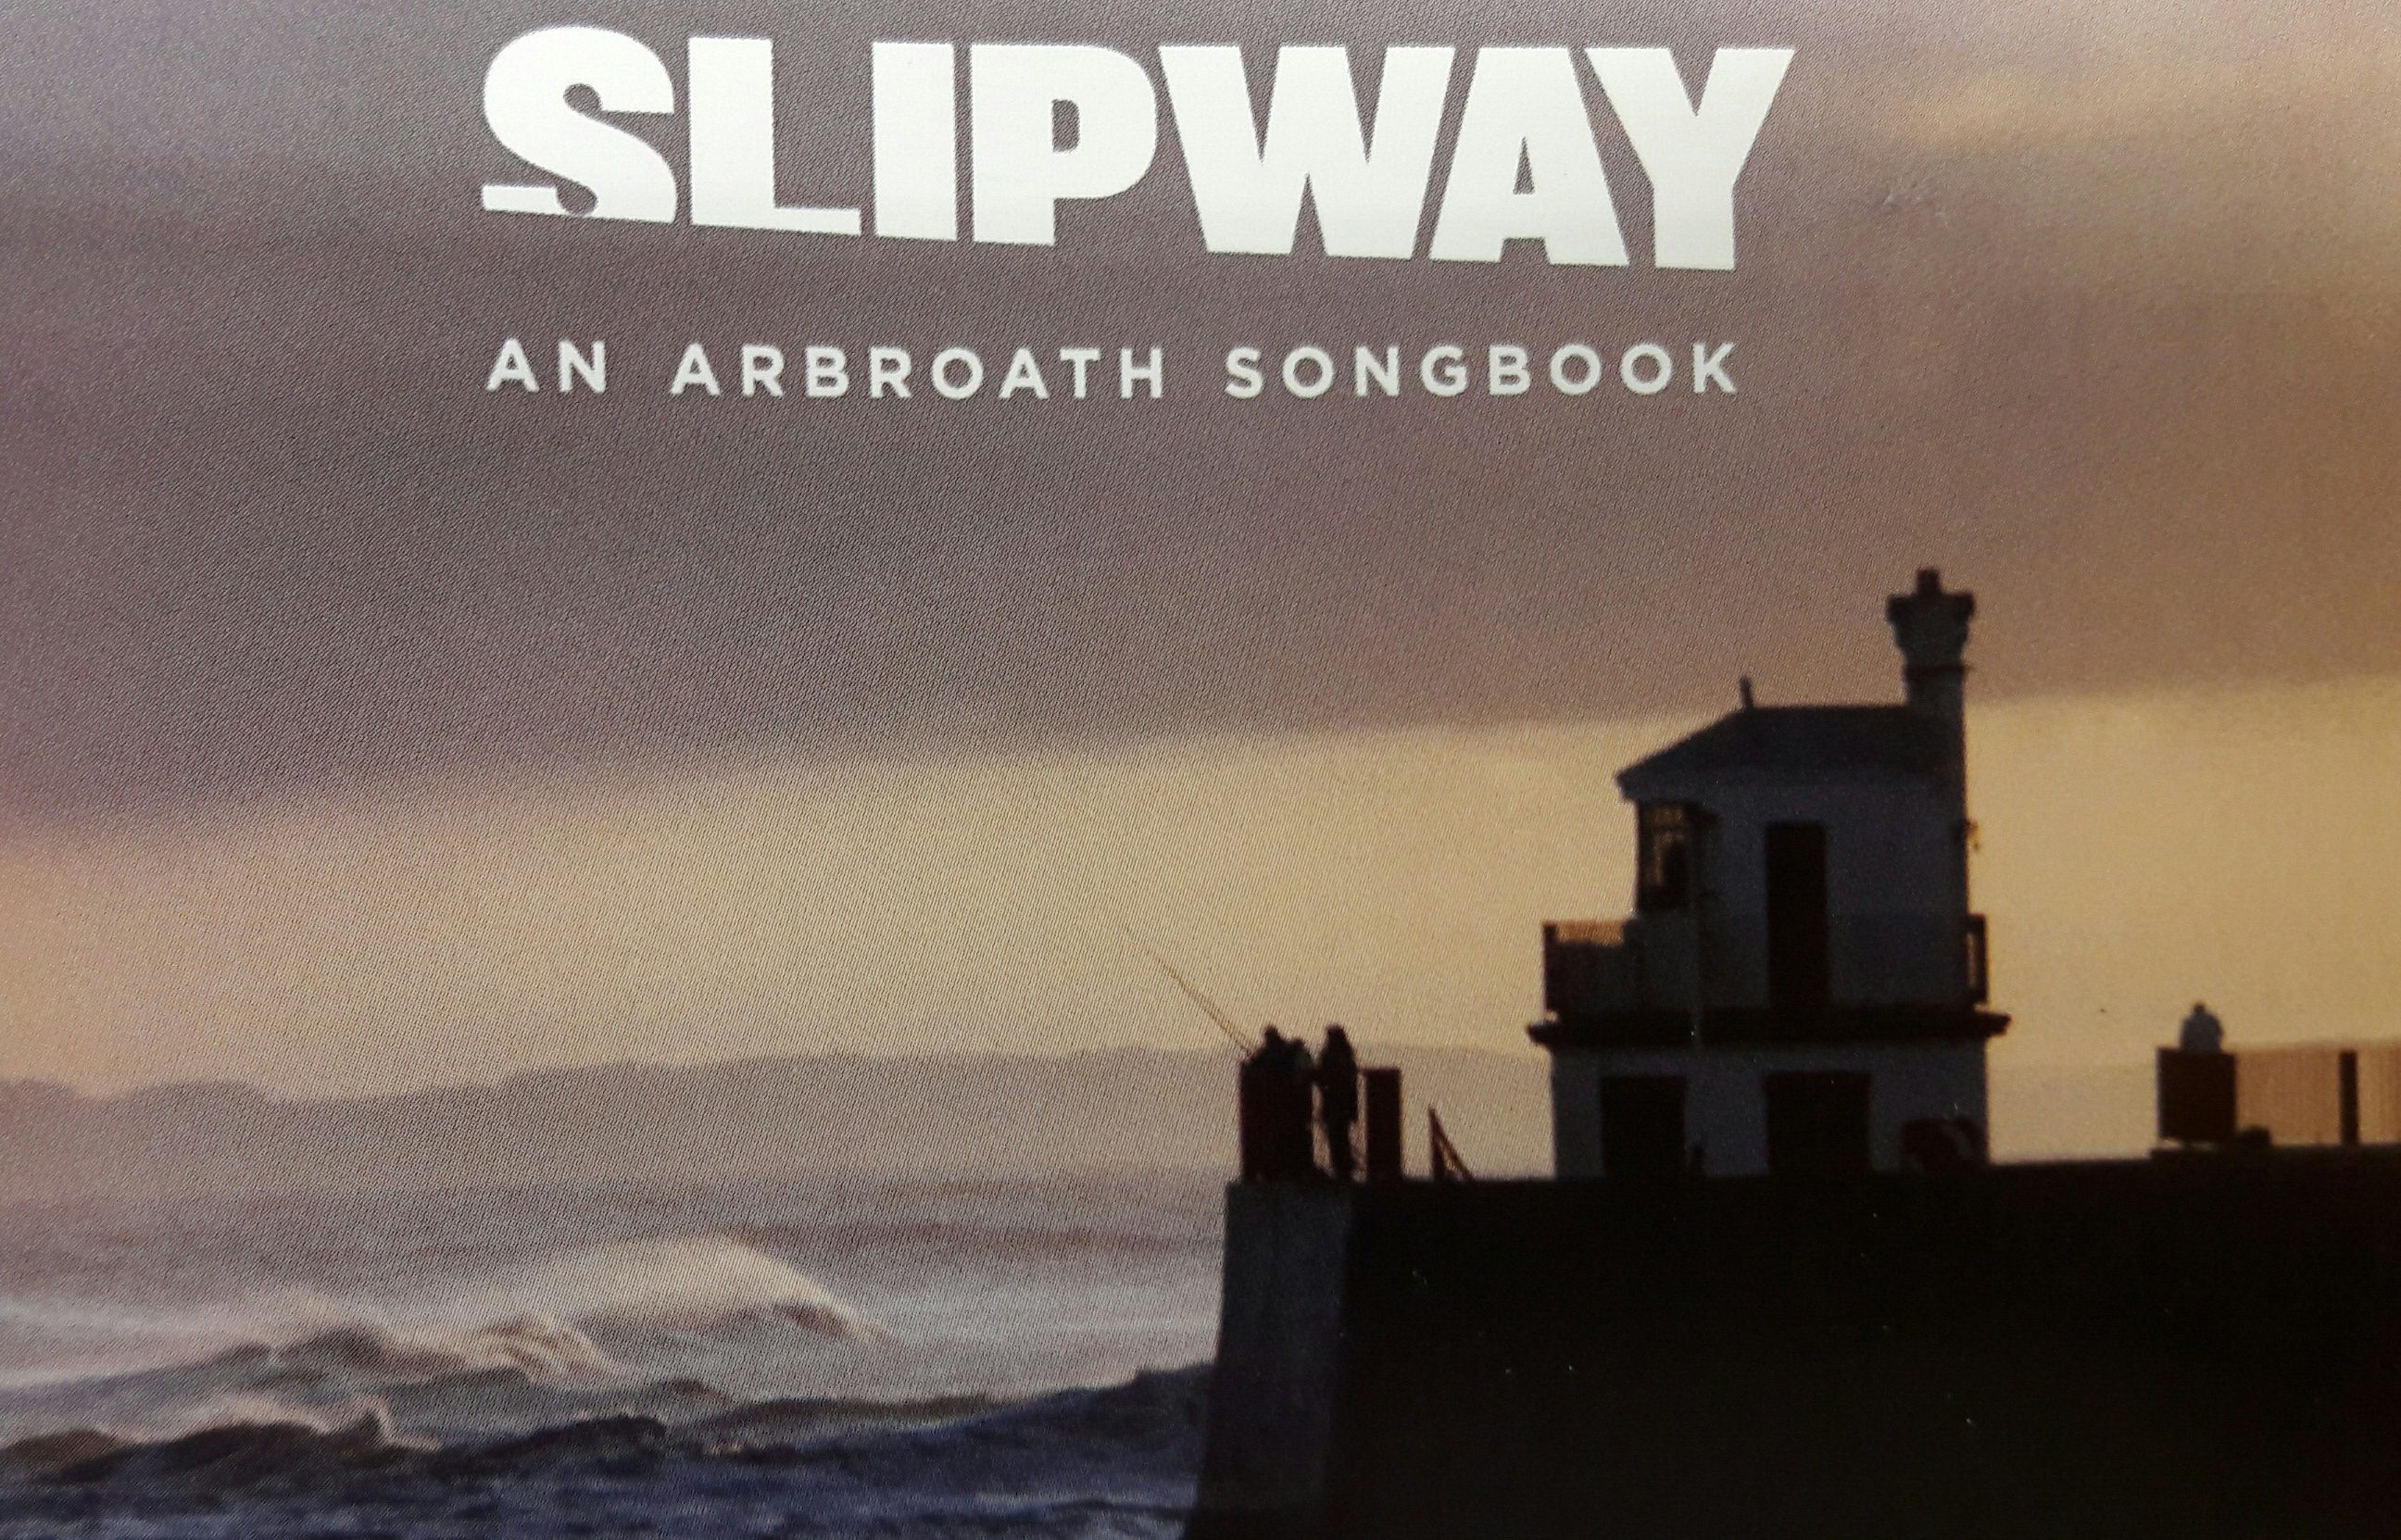 Slipway: An Arbroath Songbook.